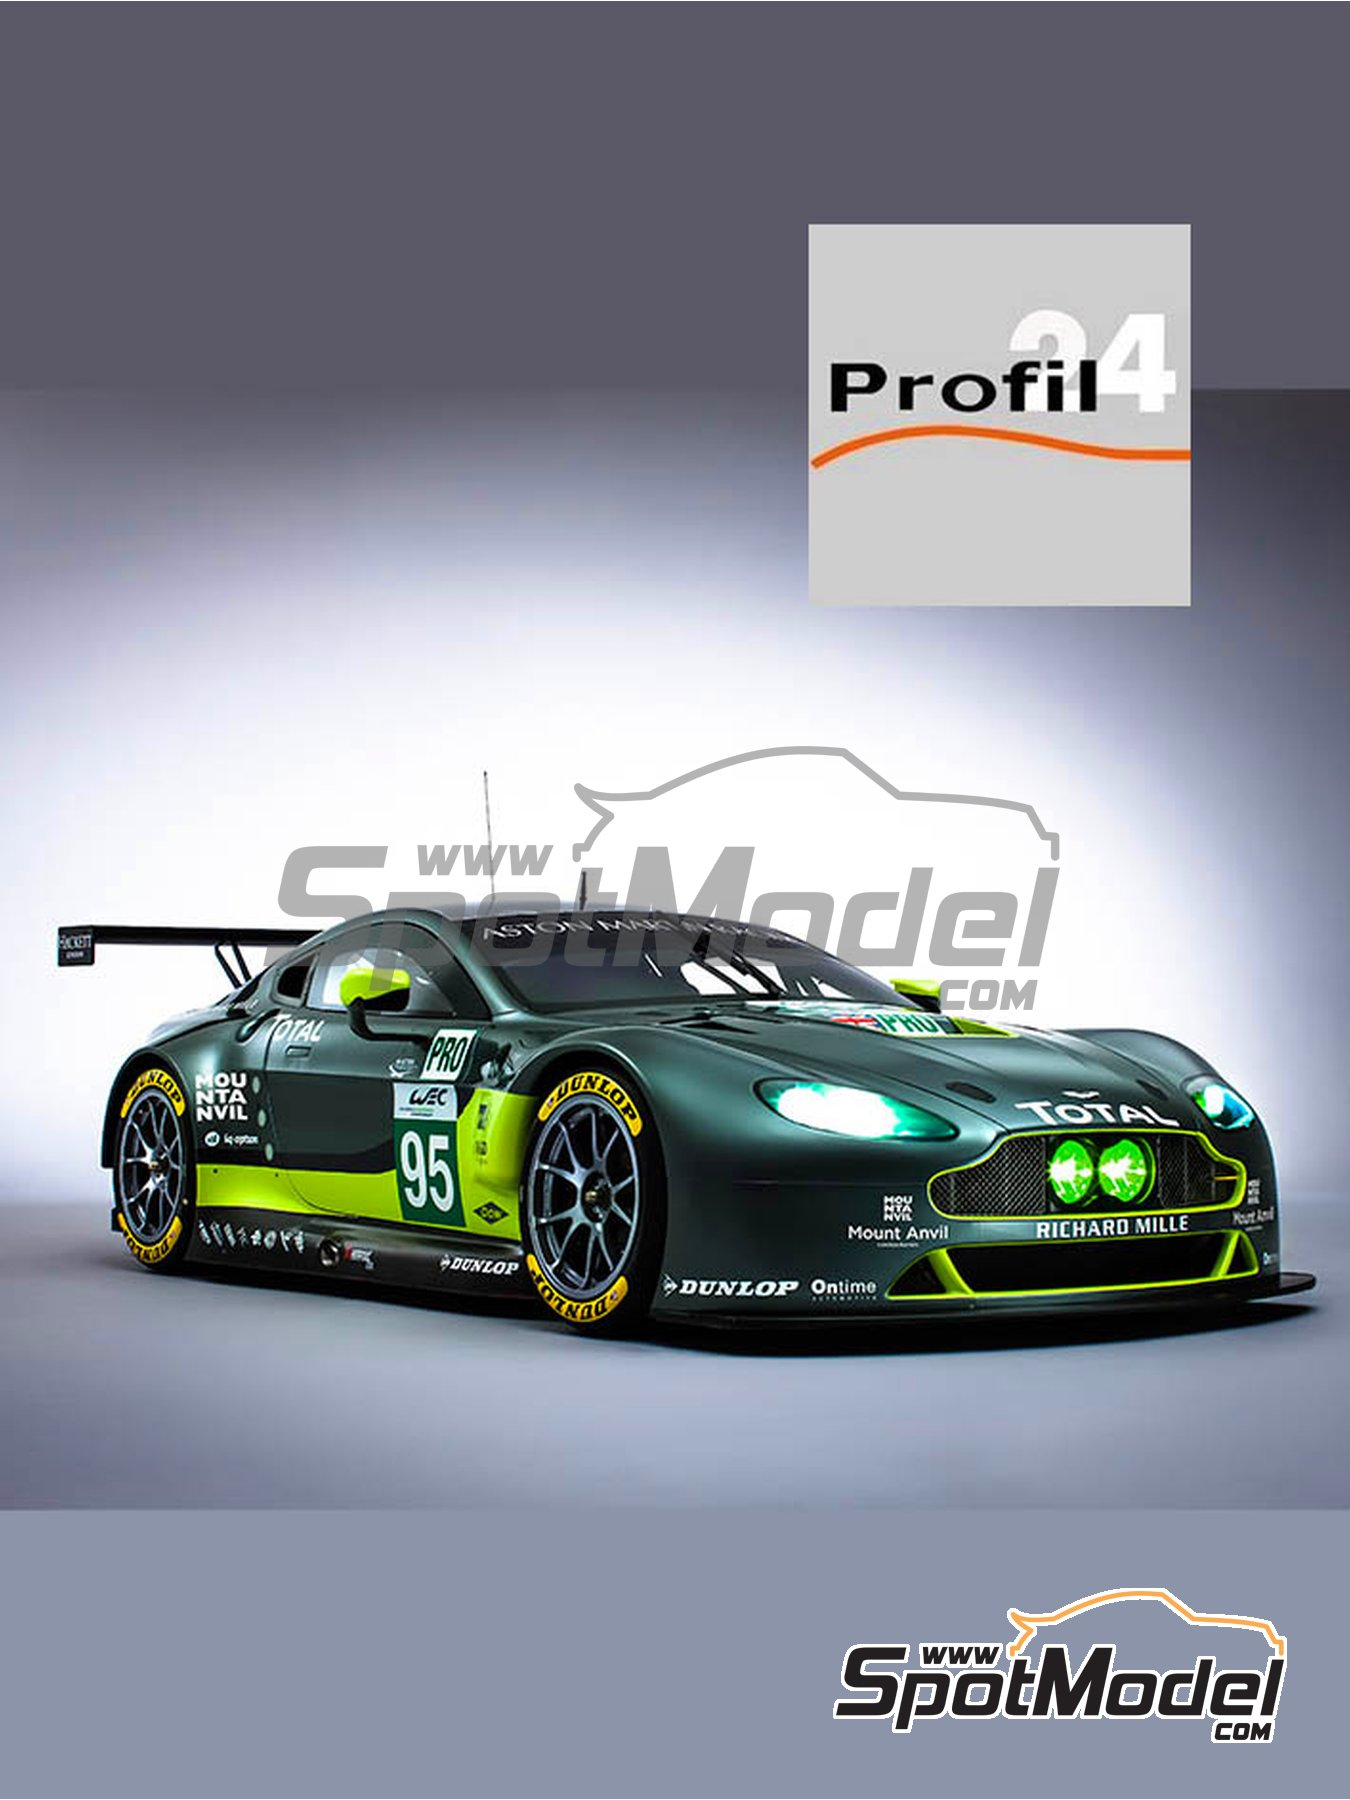 Superb Aston Martin V8 Vantage GTE Aston Martin Racing   24 Hours Le Mans 2017.  Model Car Kit In 1/24 Scale Manufactured By Profil24 (ref. P24107)